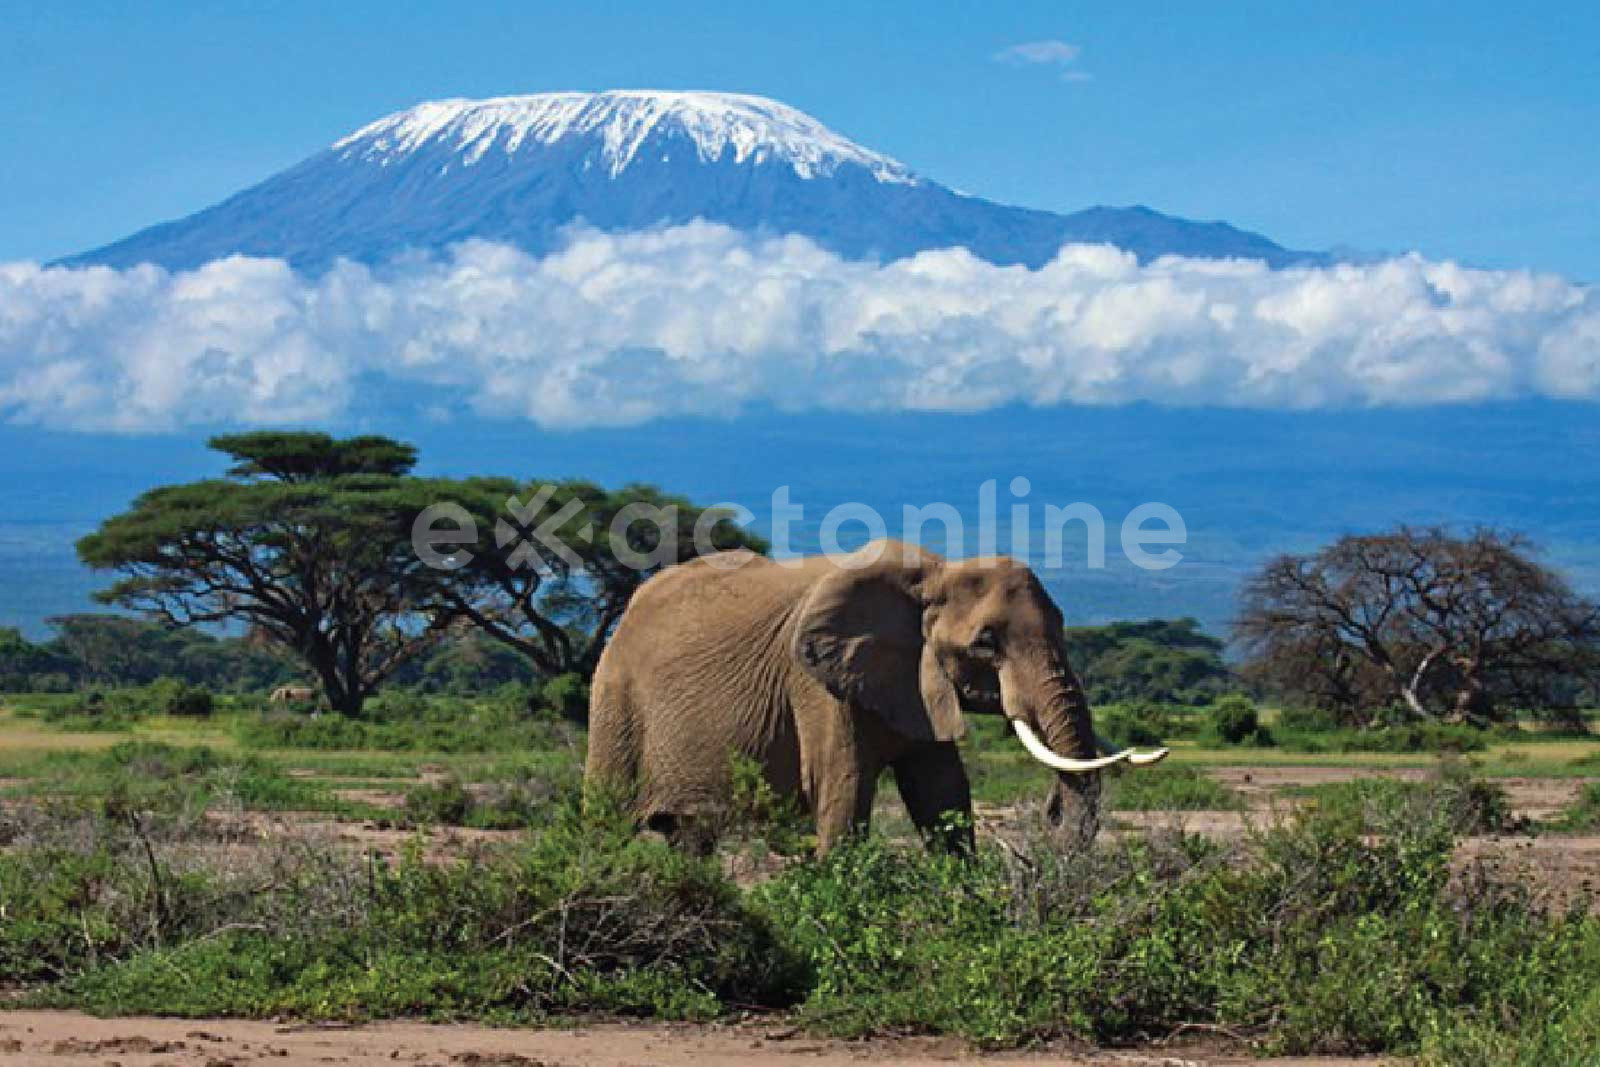 Kilimanjaro National Park : Facts, Features and More